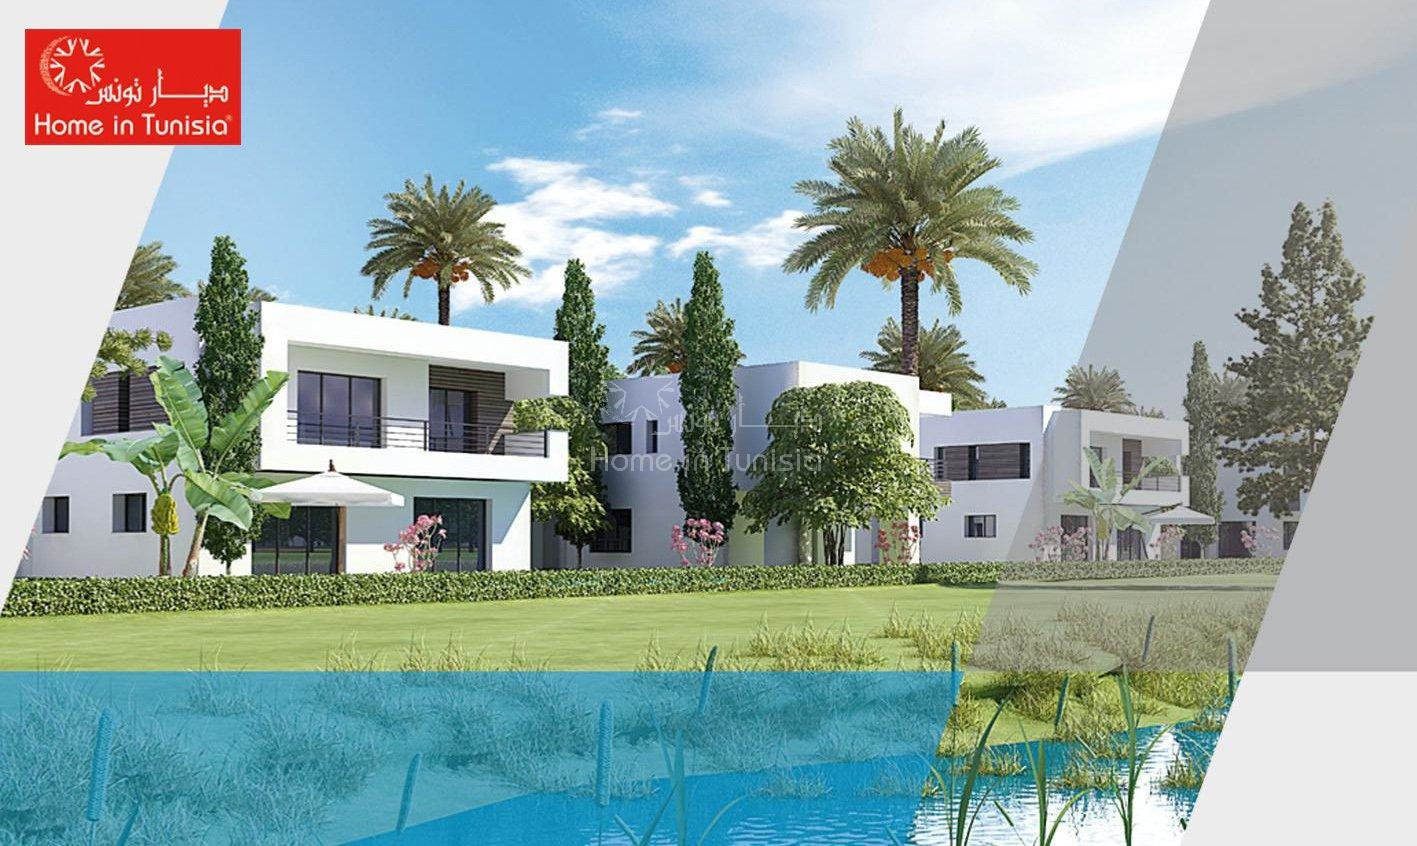 Villa et Golf Résidentiel au port financier de Tunis